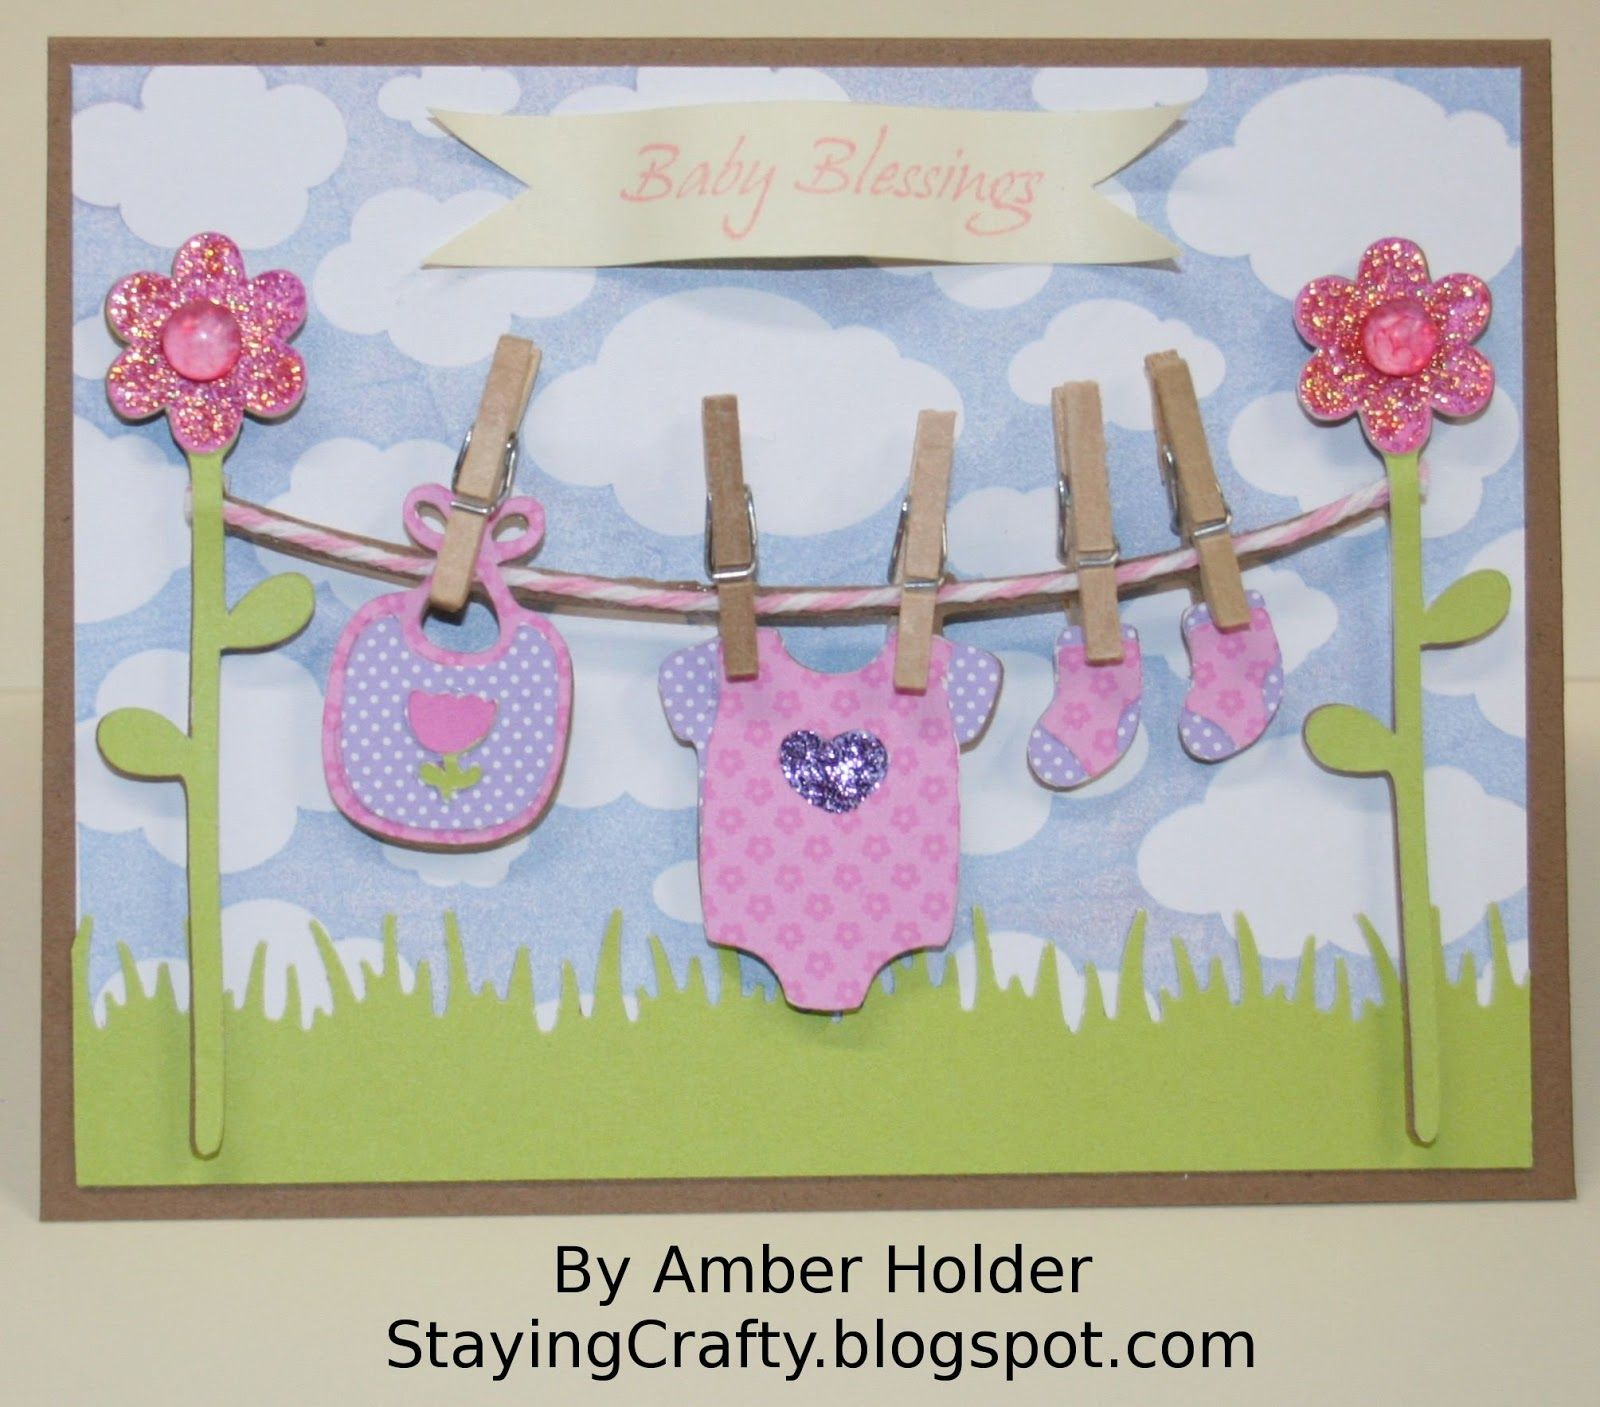 Baby Blessings Card Baby blessing cards, Cards, Baby